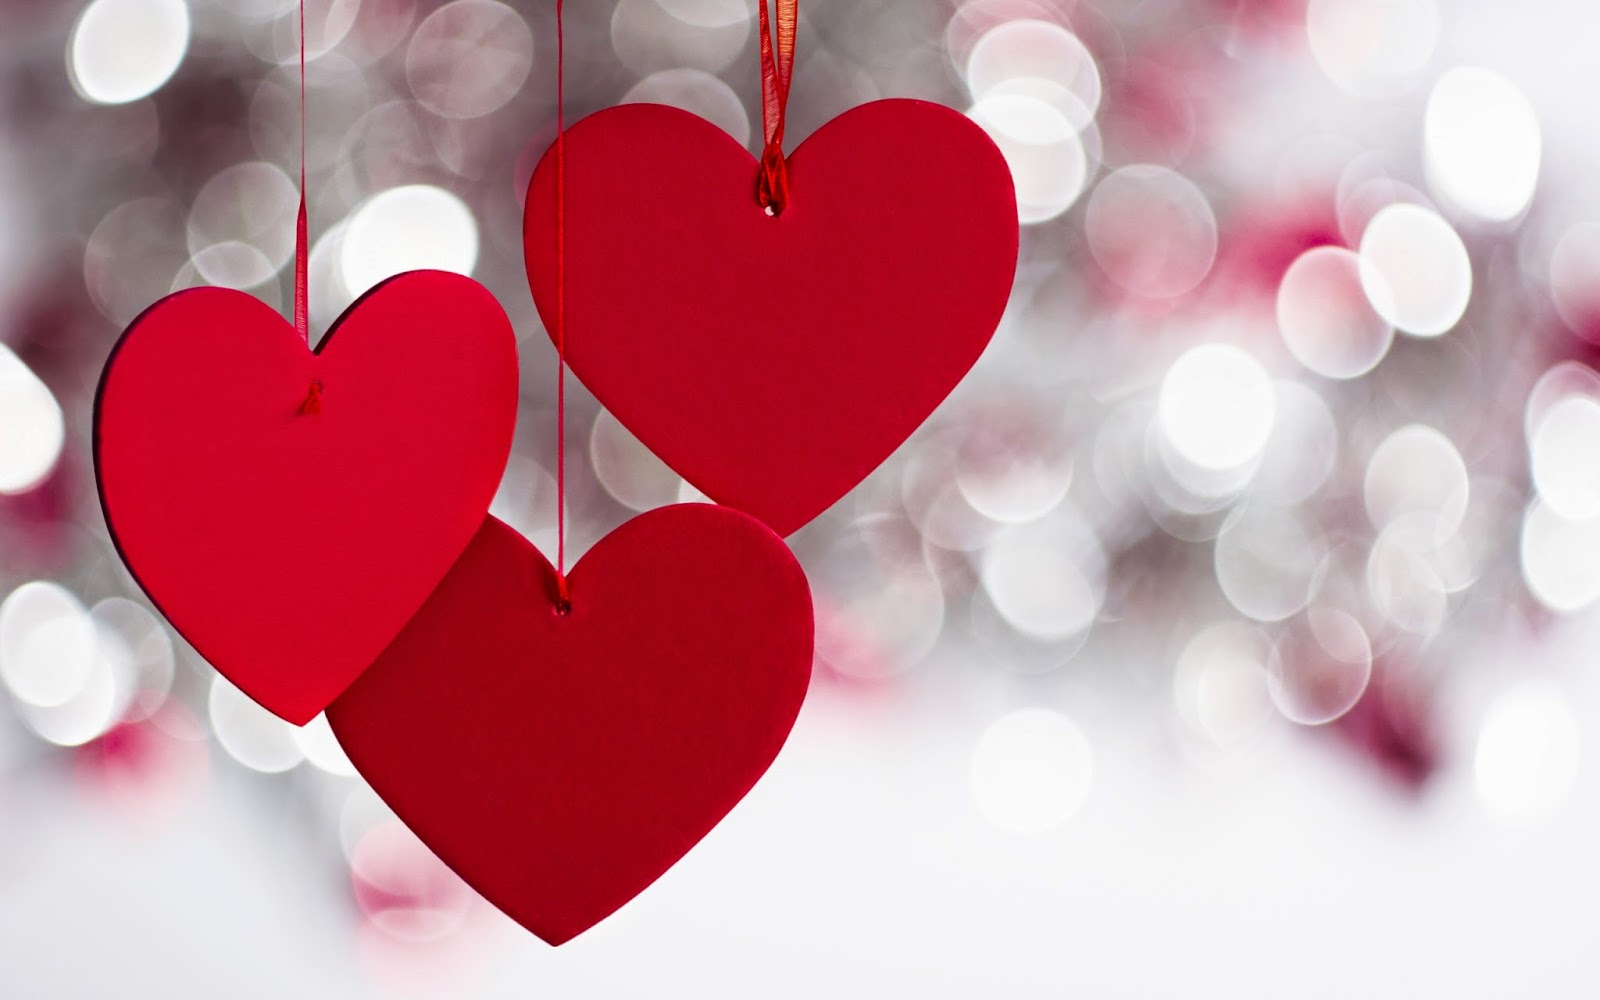 Cute and Romantic Love Quotes and HappyValentinesDay Wallpapers at Valentines Day 2015 654